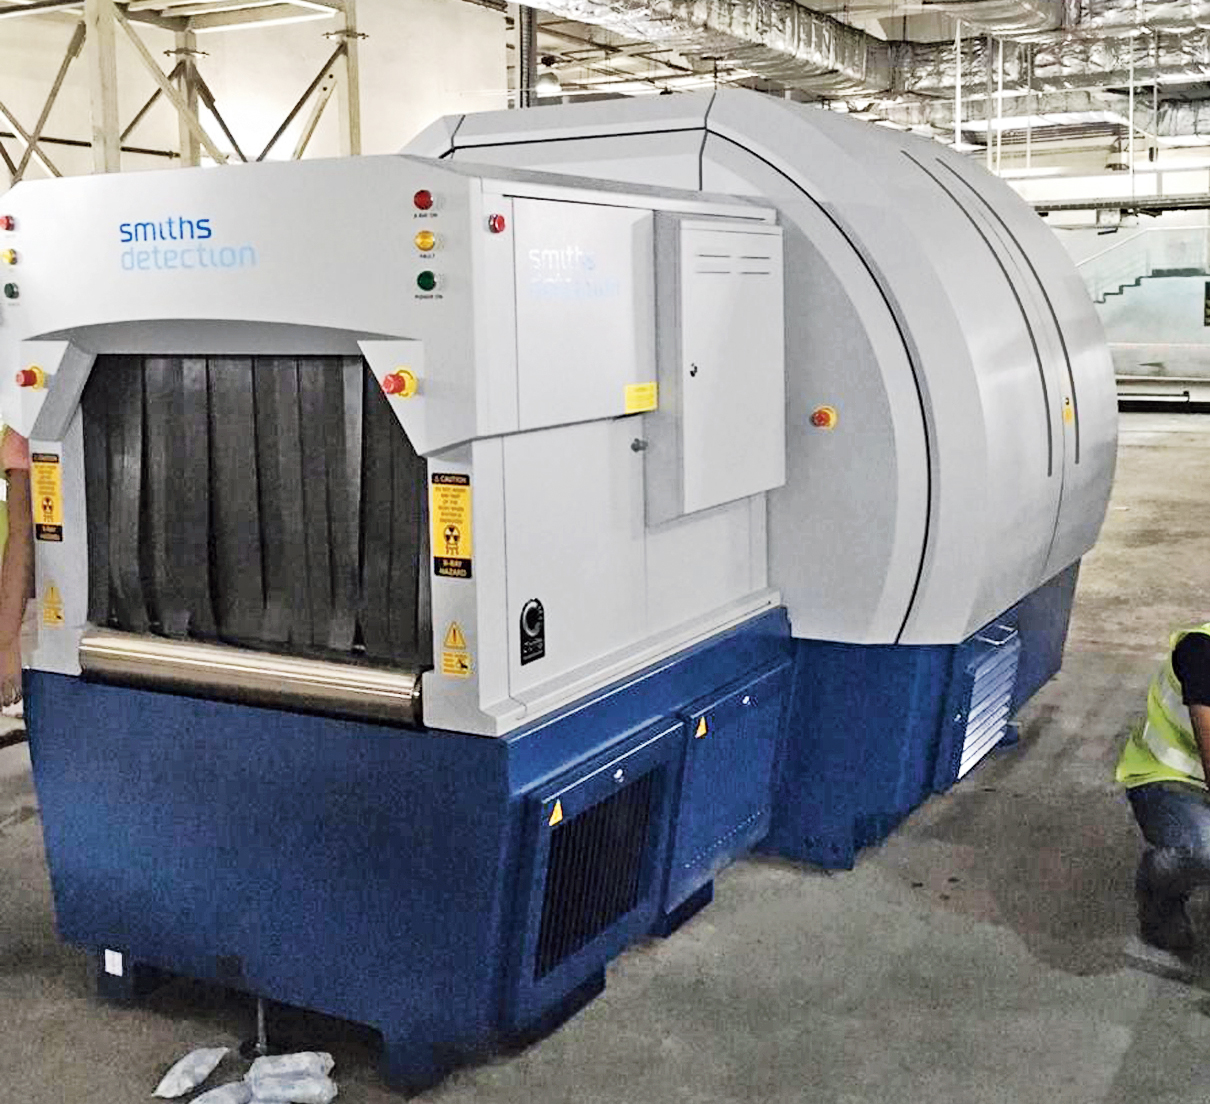 One of the X-ray machines being installed at the airport as part of the inline baggage scanning system